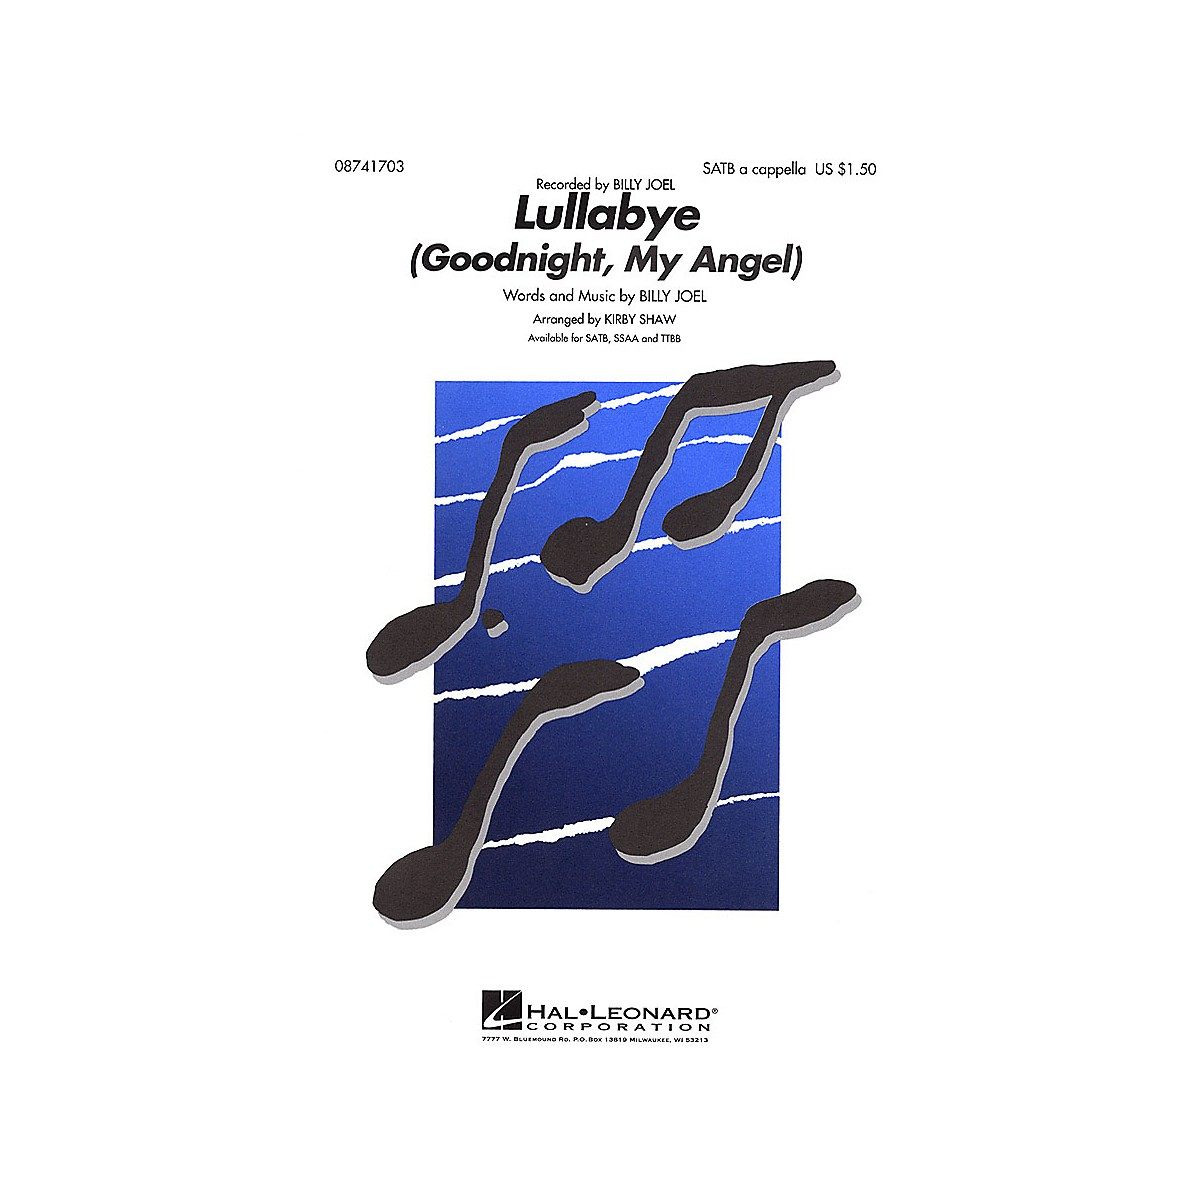 Hal Leonard Lullabye (Goodnight, My Angel) TTBB A Cappella by Billy Joel Arranged by Kirby Shaw